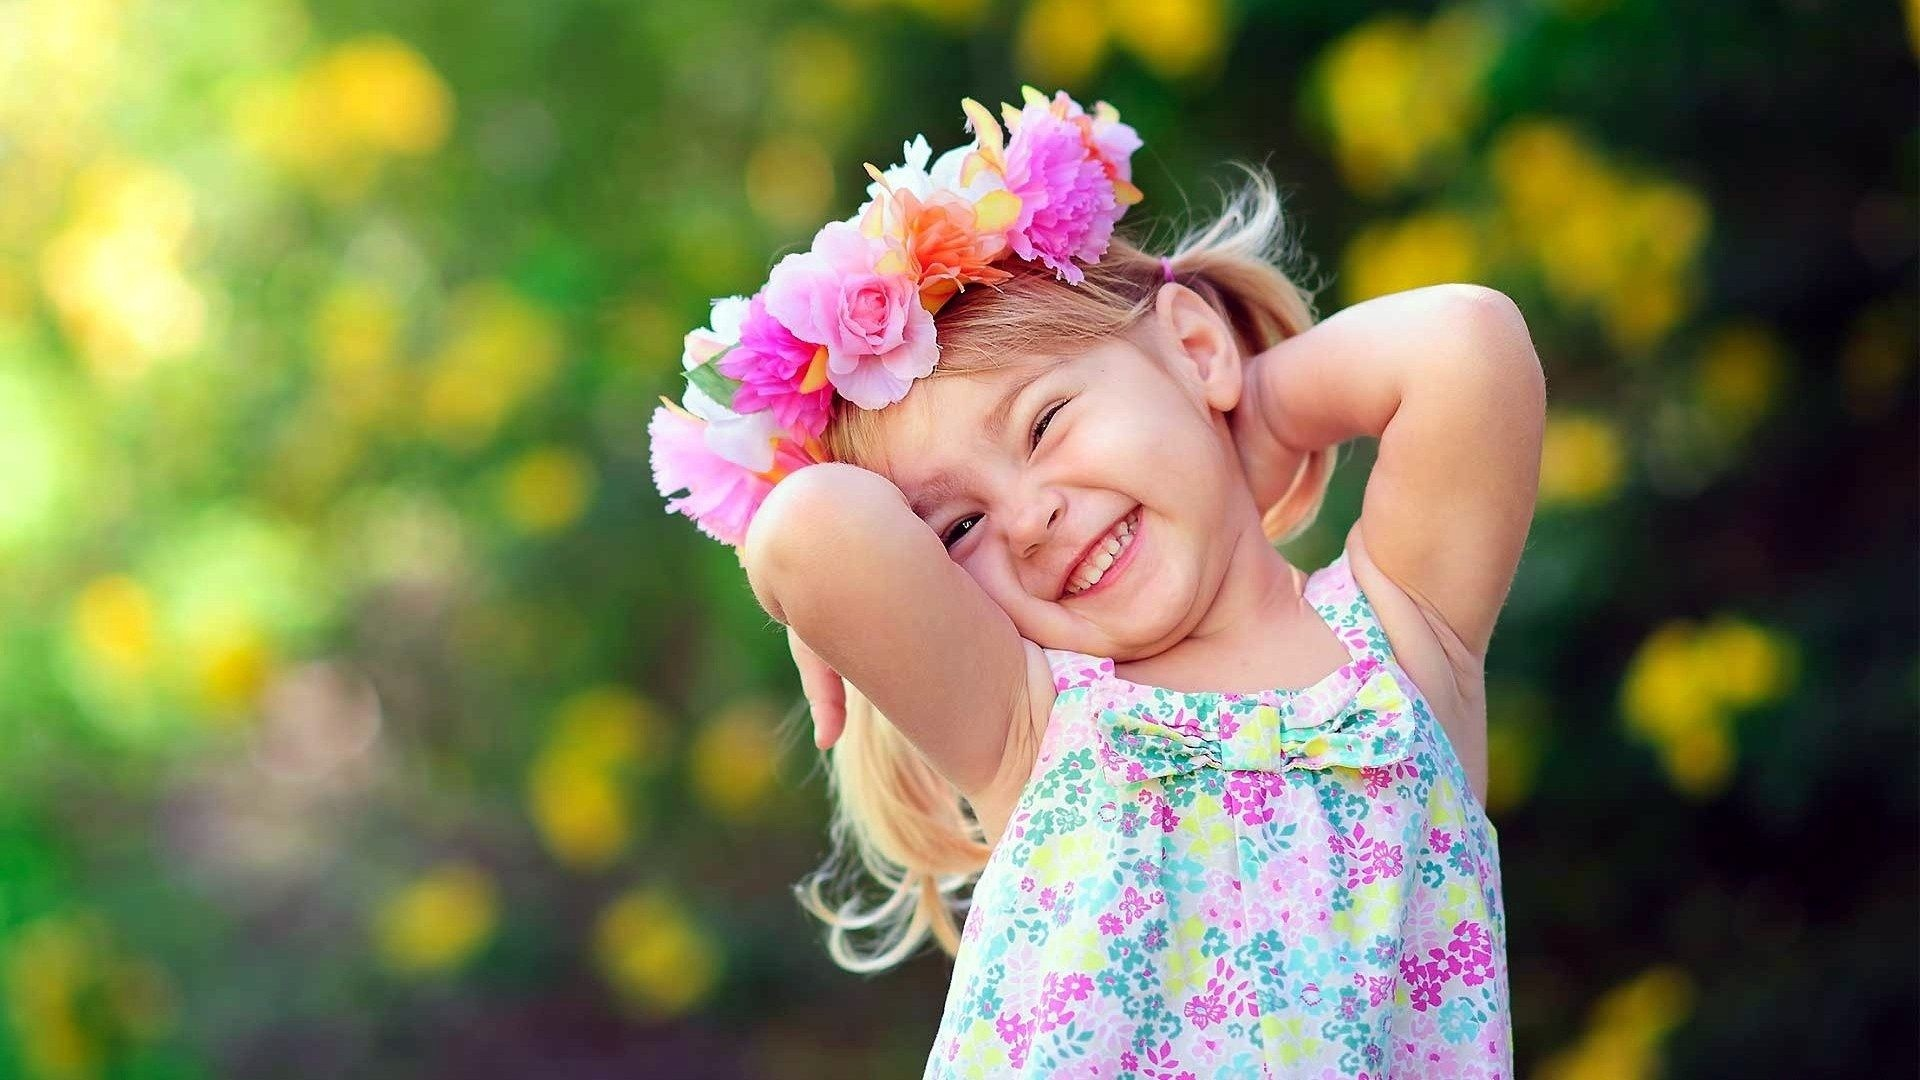 Cute Little Babies Hq 2 Wallpapers: Innocent Wallpapers (74+ Images